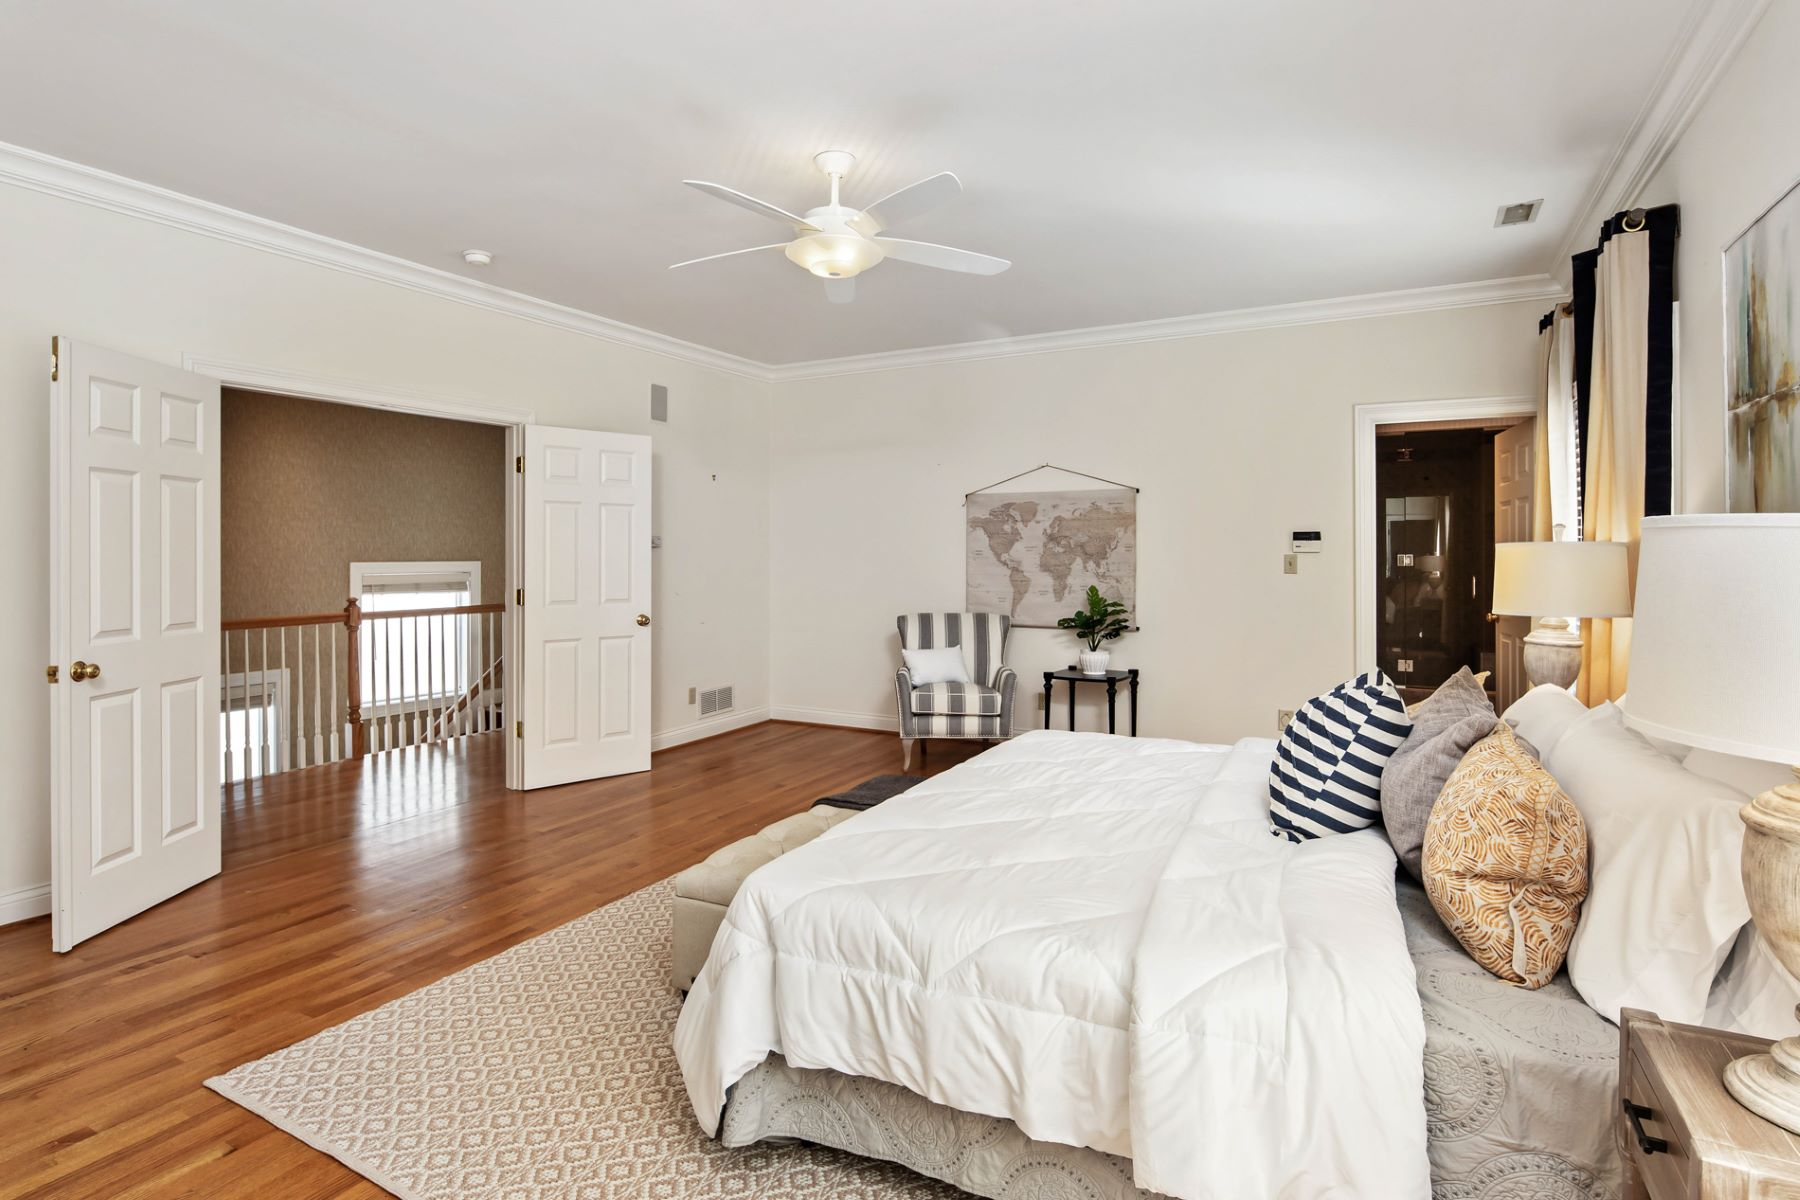 Additional photo for property listing at Gay Ave 248 Gay Ave Clayton, Missouri 18057 United States